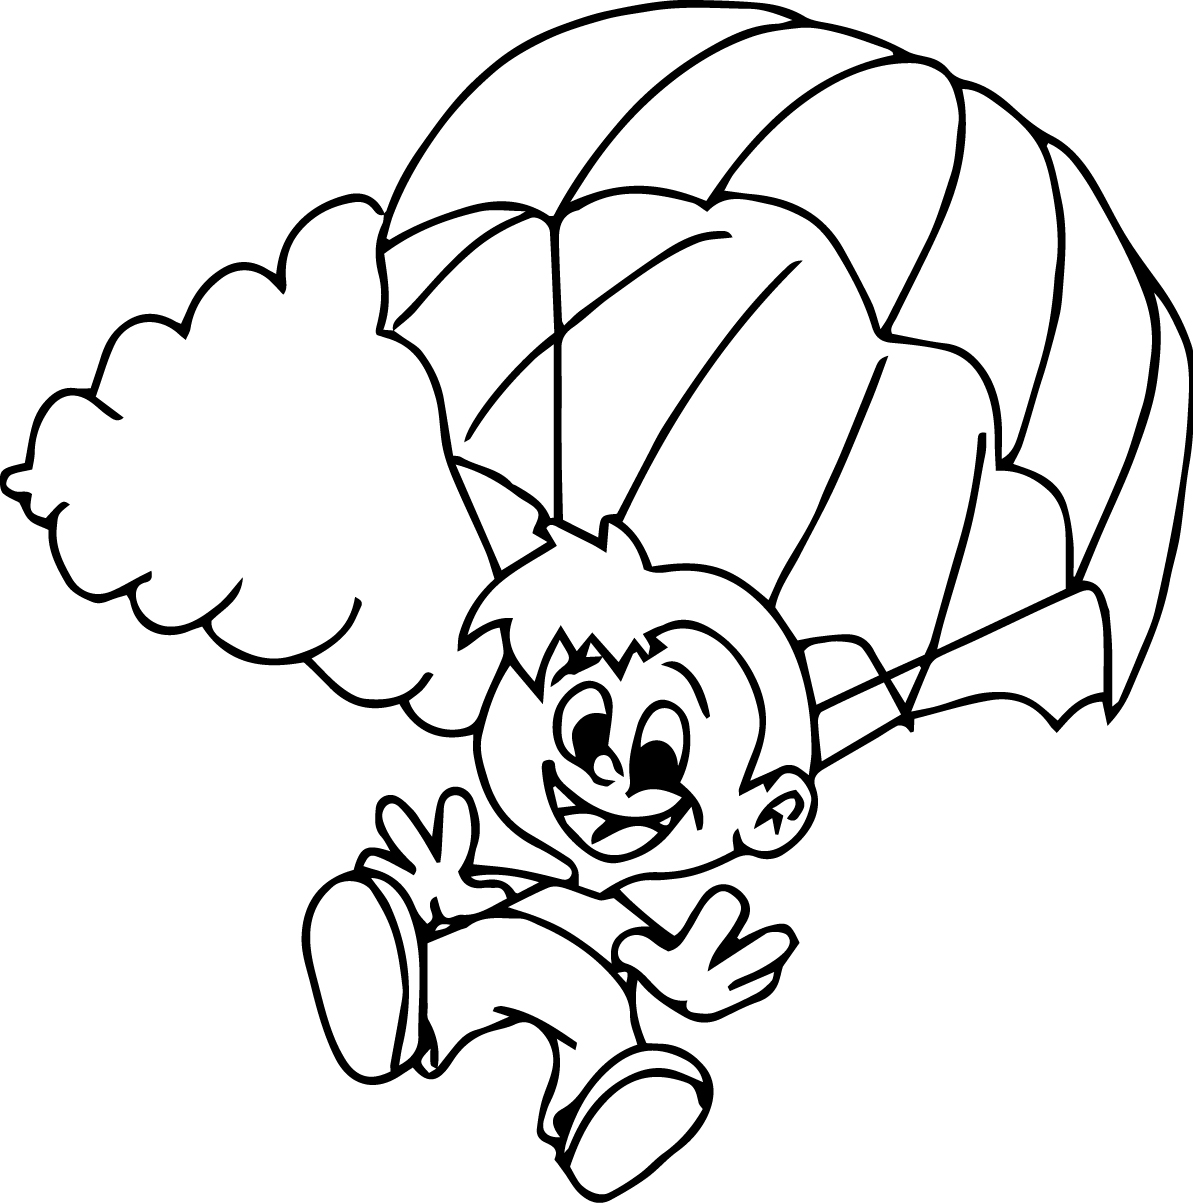 parachute coloring pages paratrooper drawing at getdrawings free download parachute pages coloring